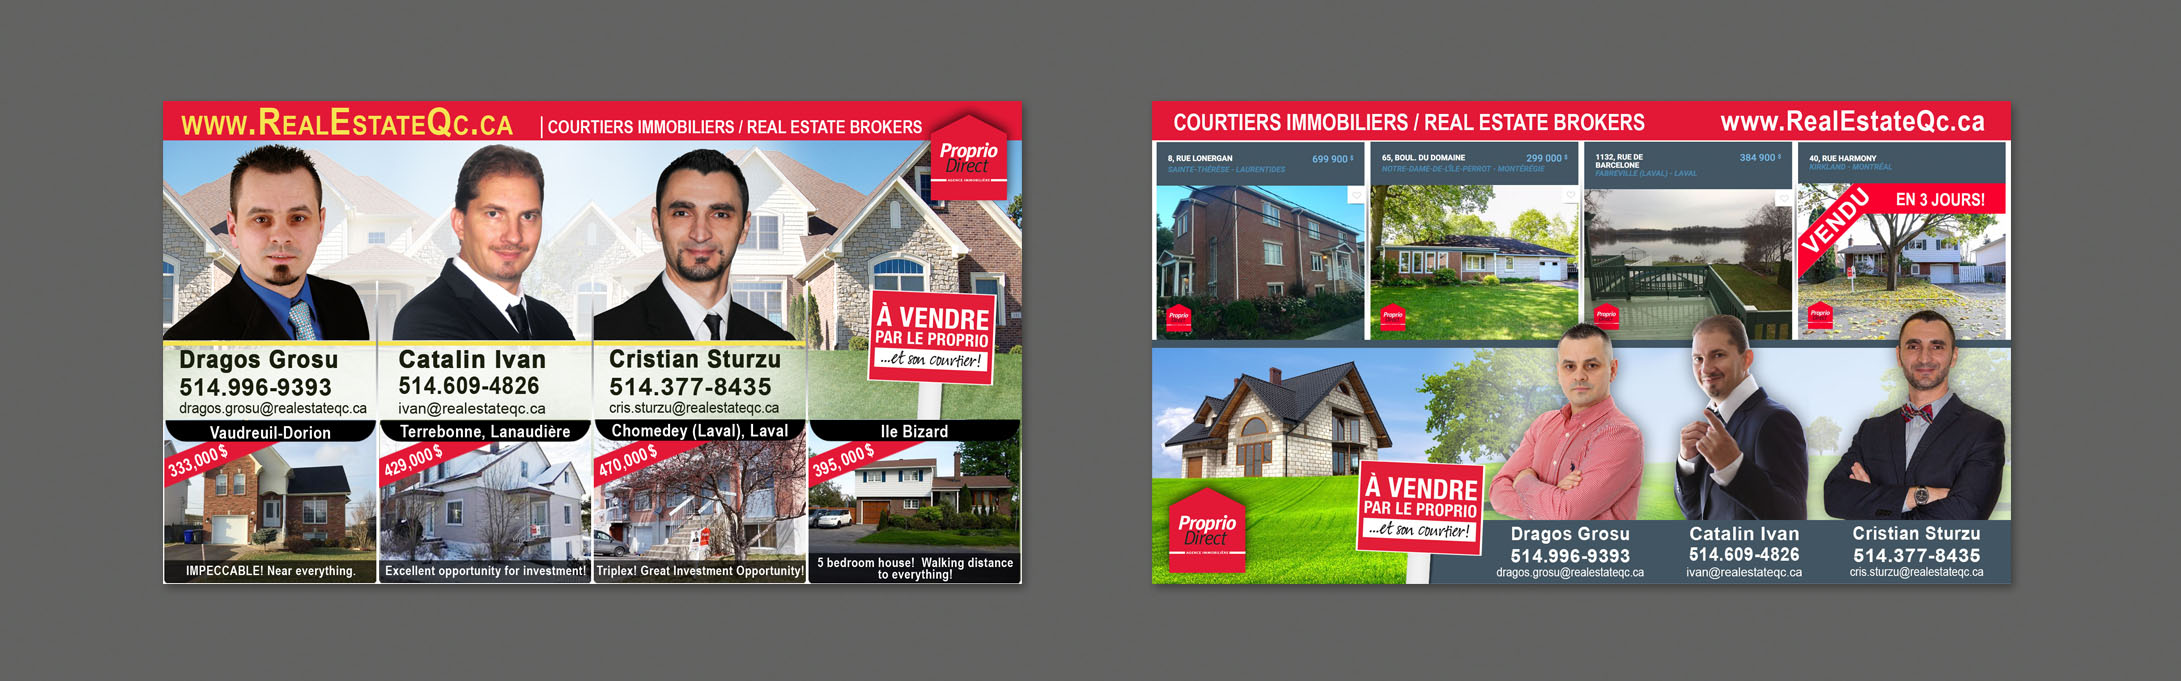 AccrochePorte_cartes_promotions_3